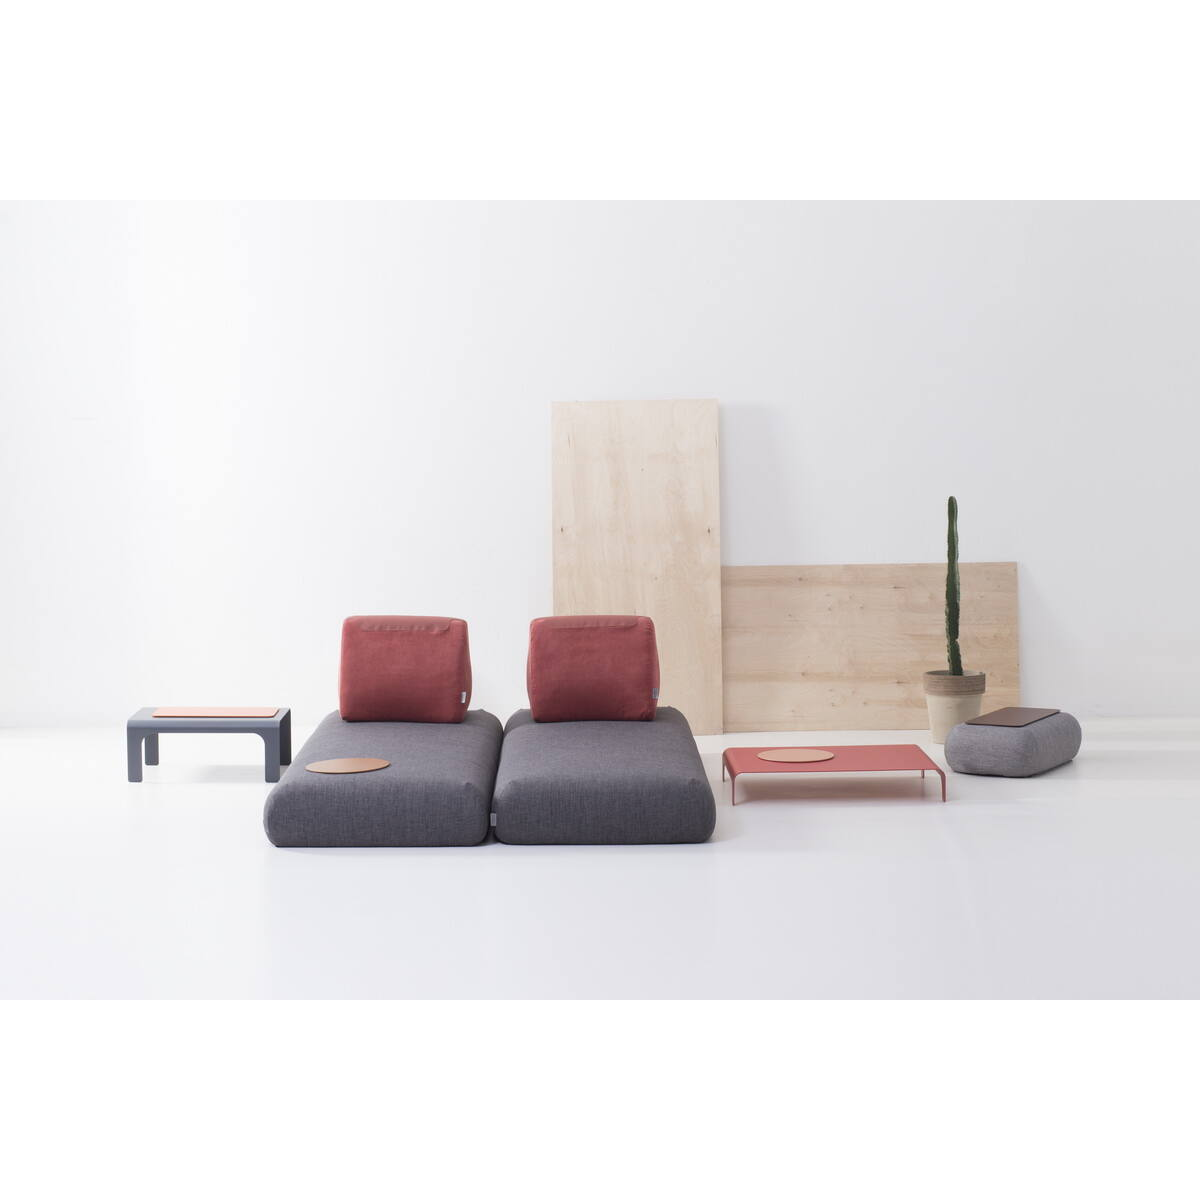 Hannabi Urban Nomad Sofa Box Model No 4 80 Urban Nomad Hannabi Webshop